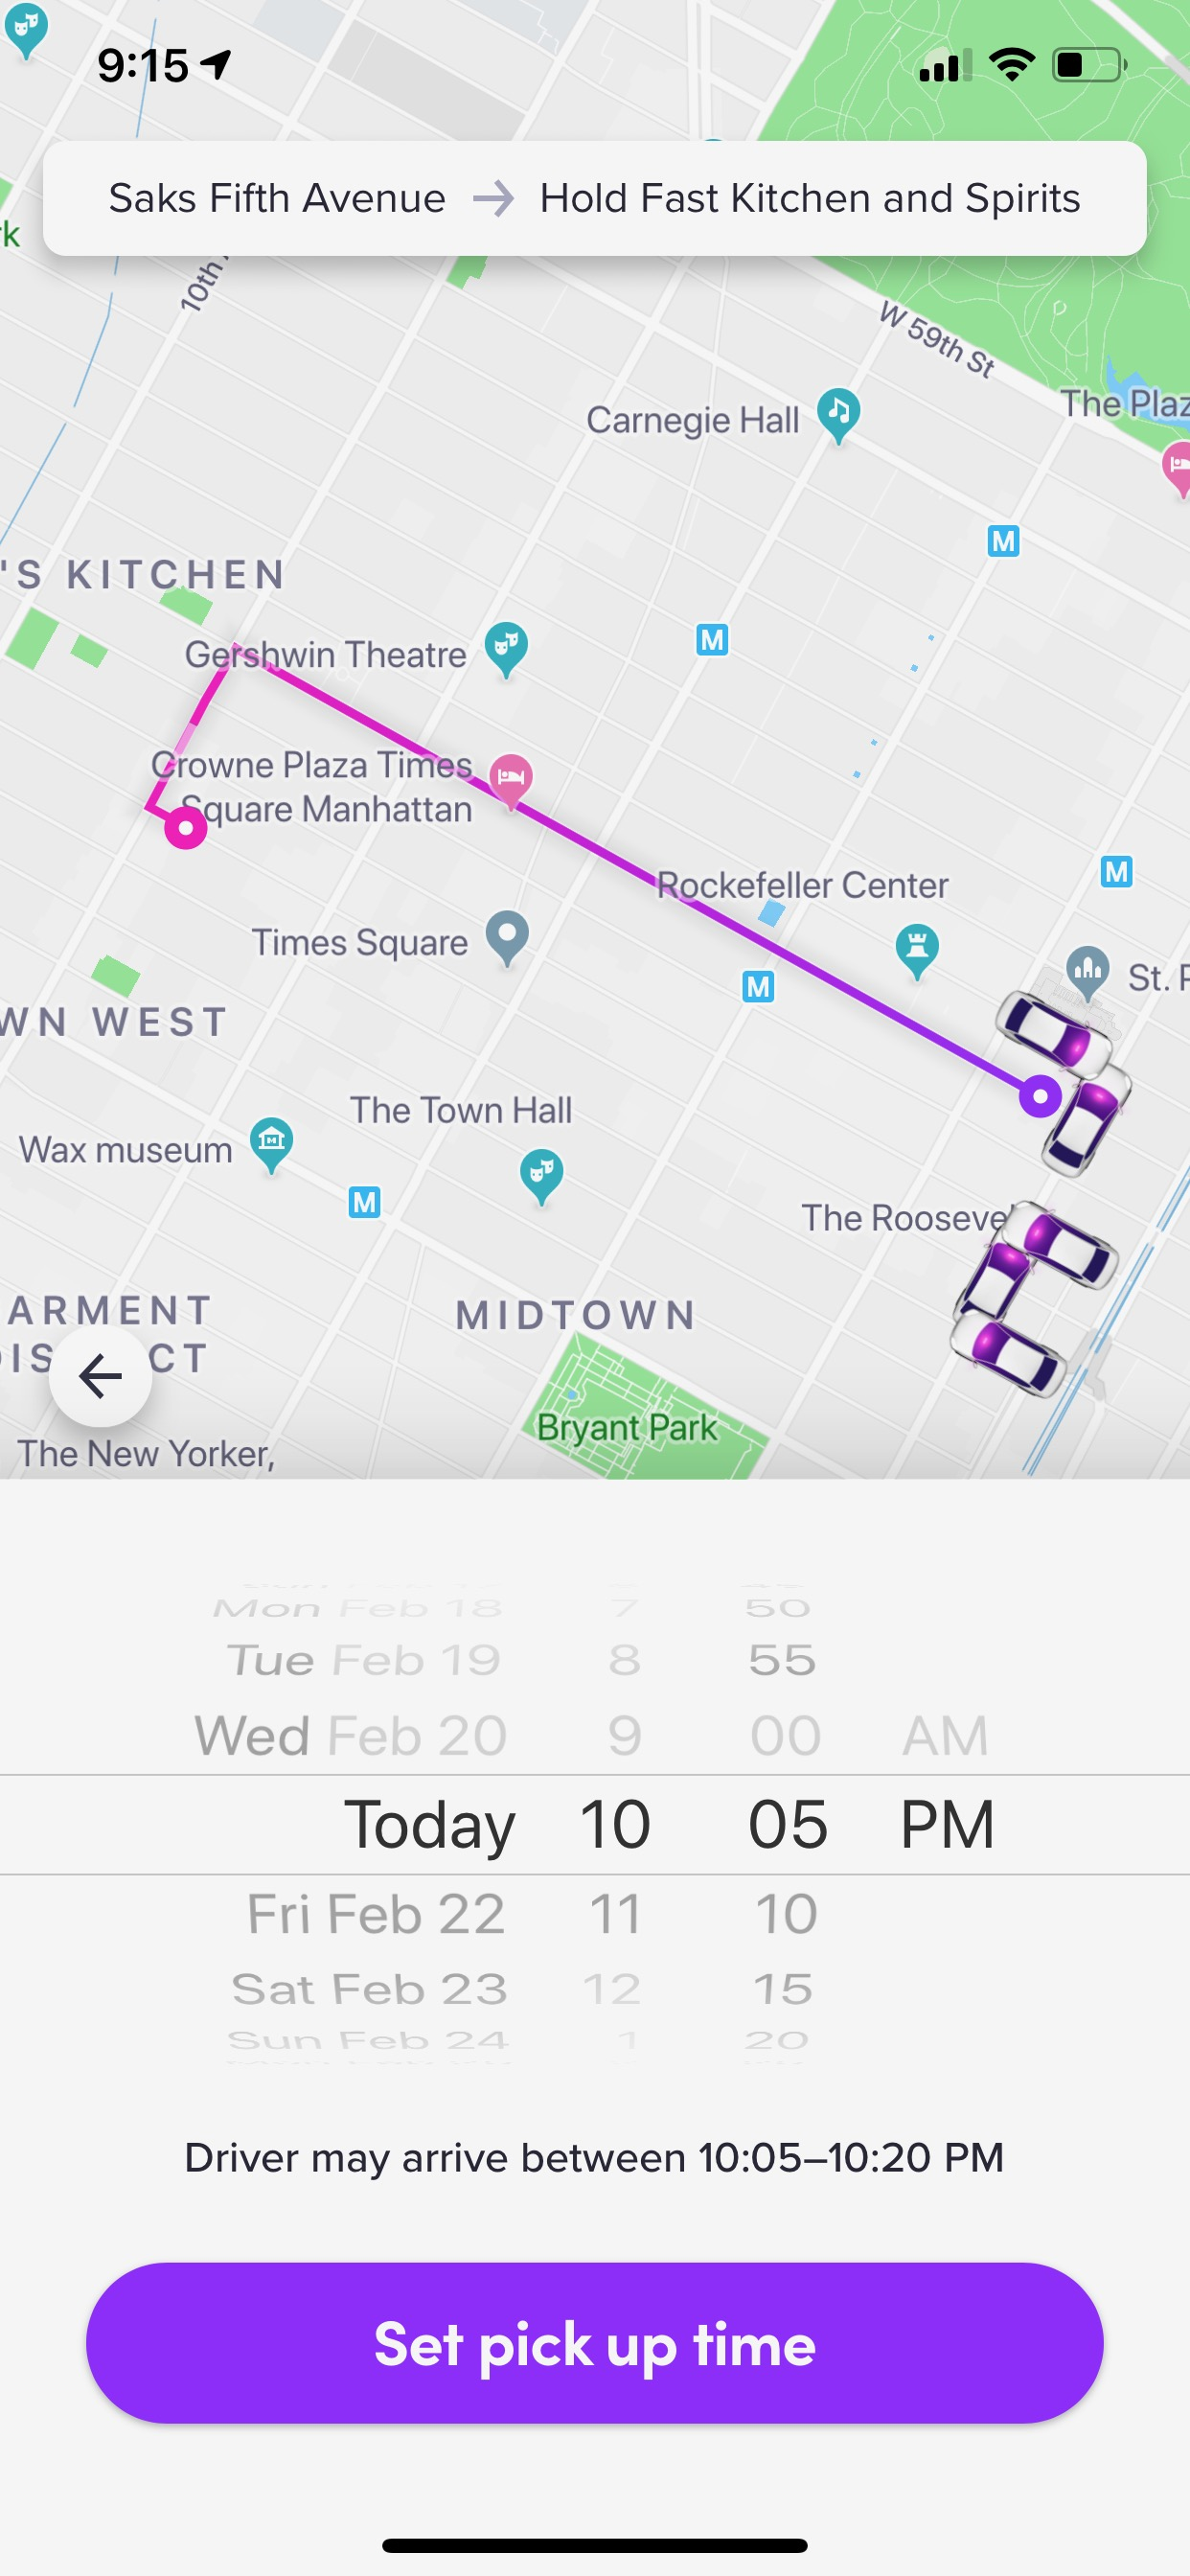 RideGuru - How to Schedule Lyft Rides in Advance